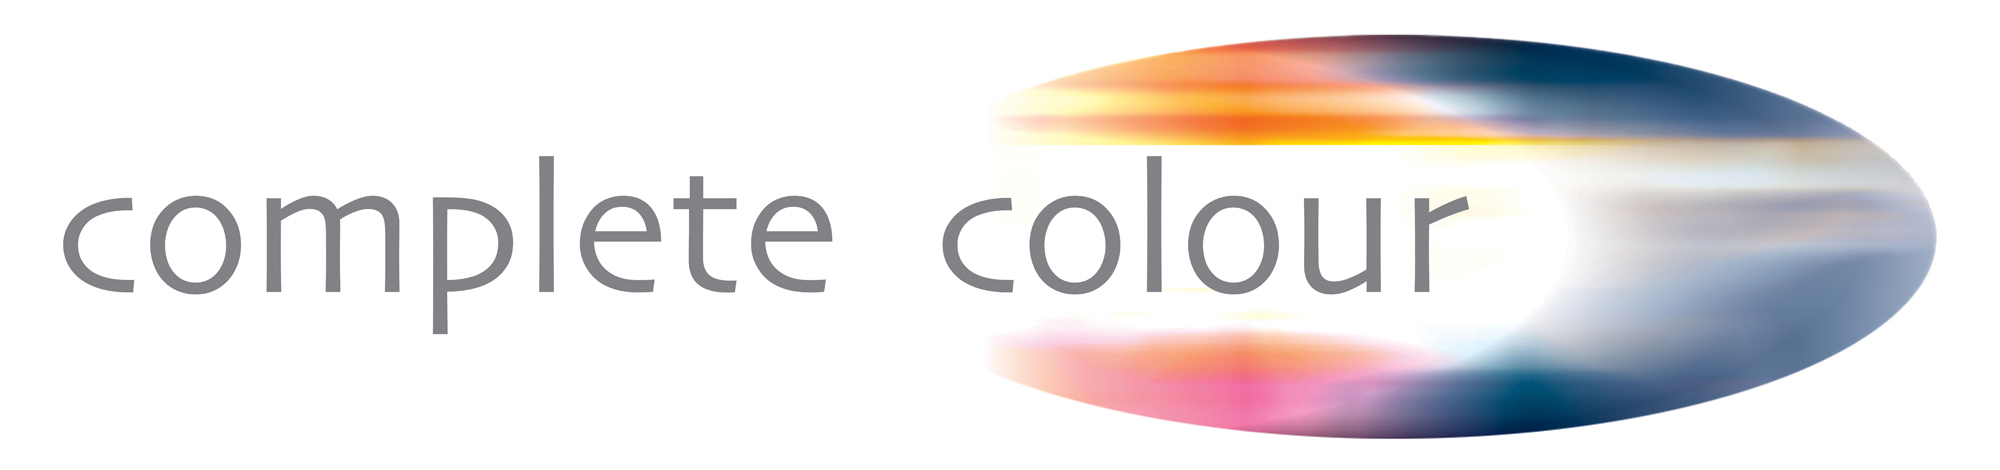 Complete Colour Logo